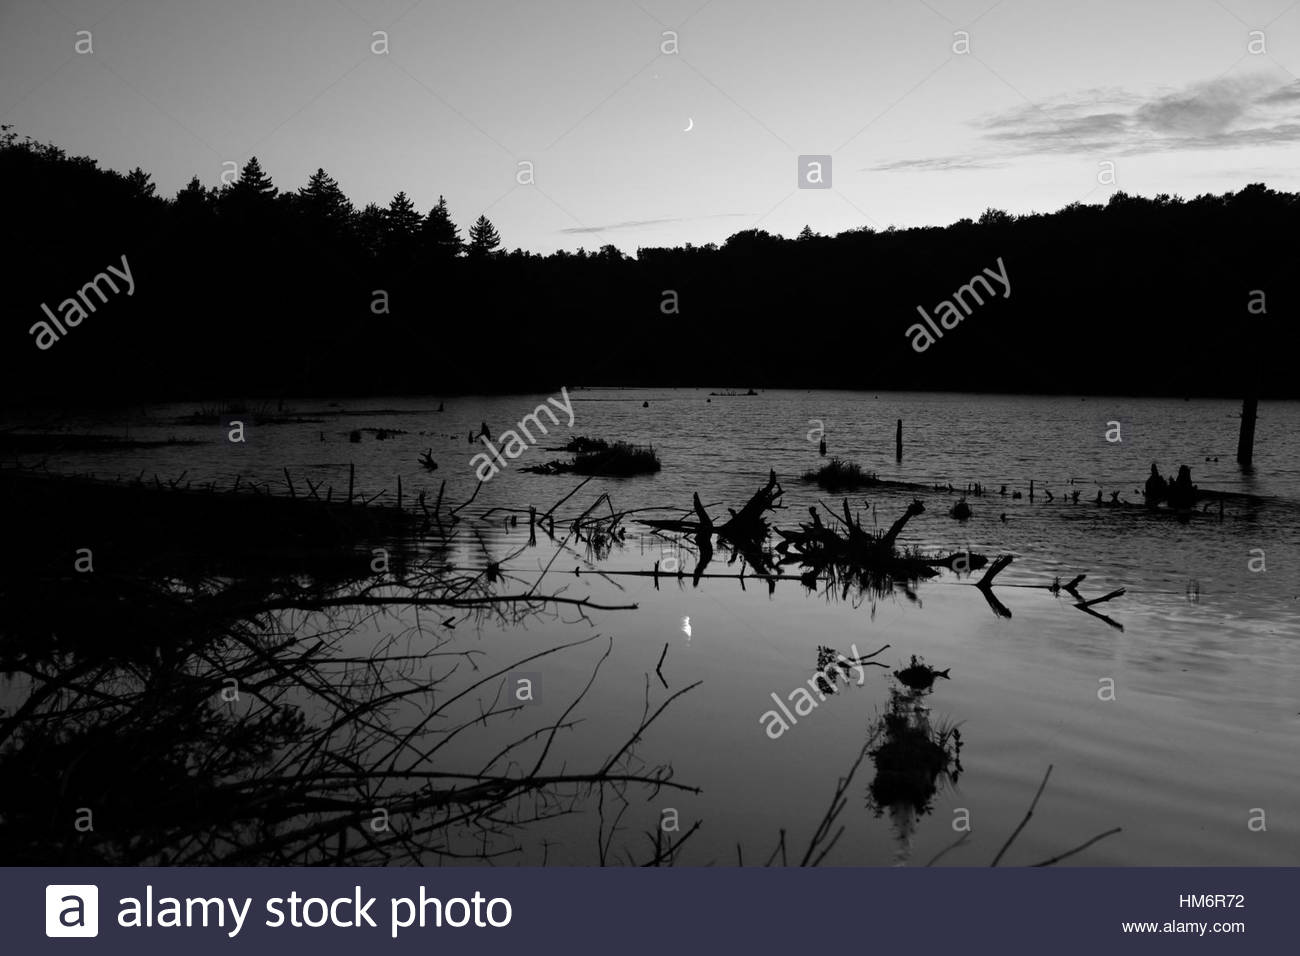 Beaver pond at dusk with reflection of the moon rising in the distance over the tree line monochrome Stock Photo